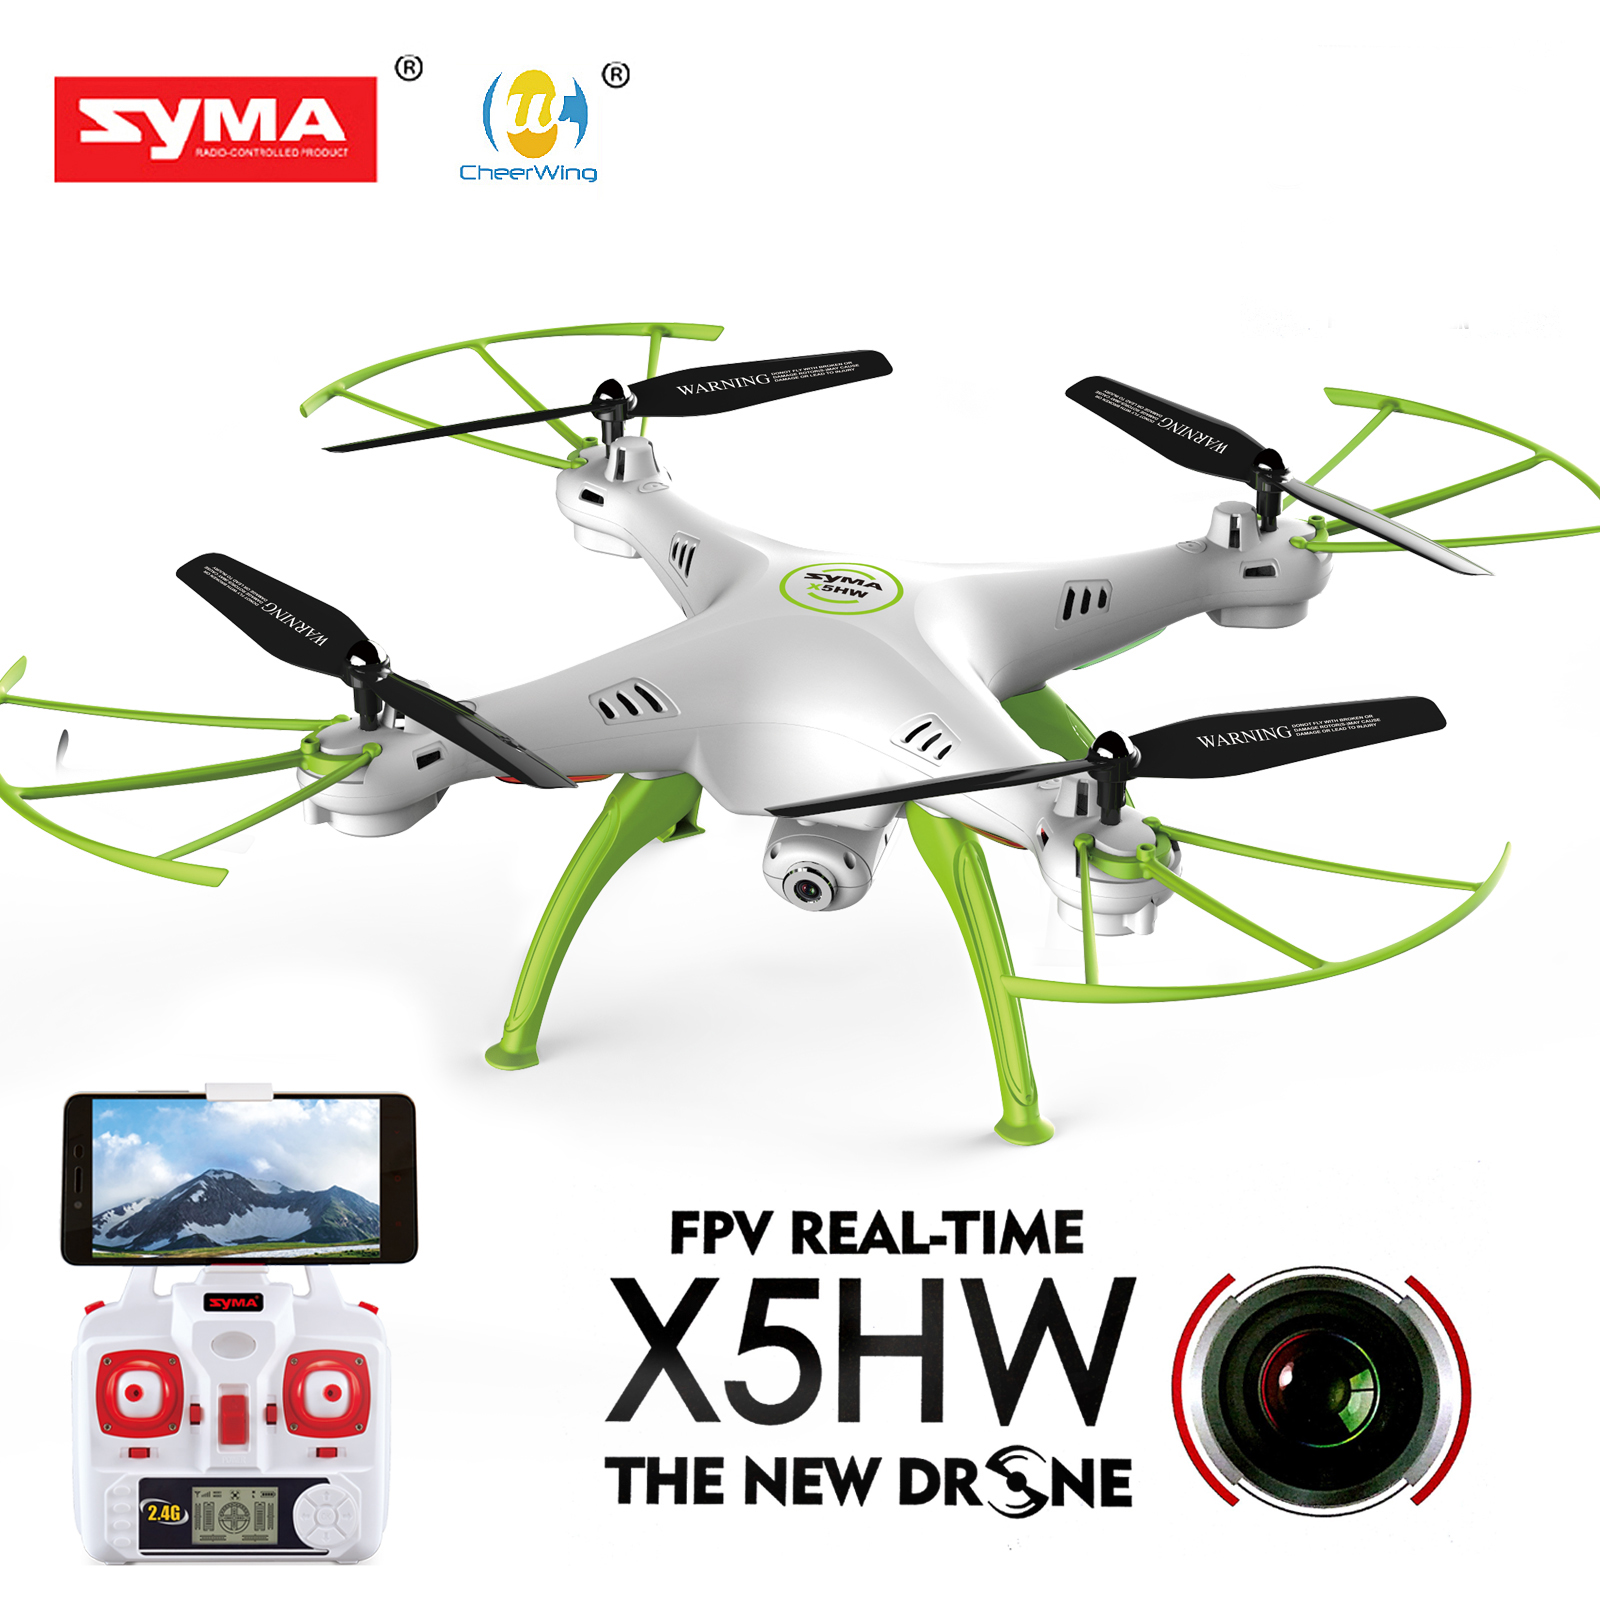 Cheerwing Syma X5HW-I FPV 2.4Ghz 4CH RC Headless Quadcopter Drone UFO with Hover Function HD Wifi Camera, White